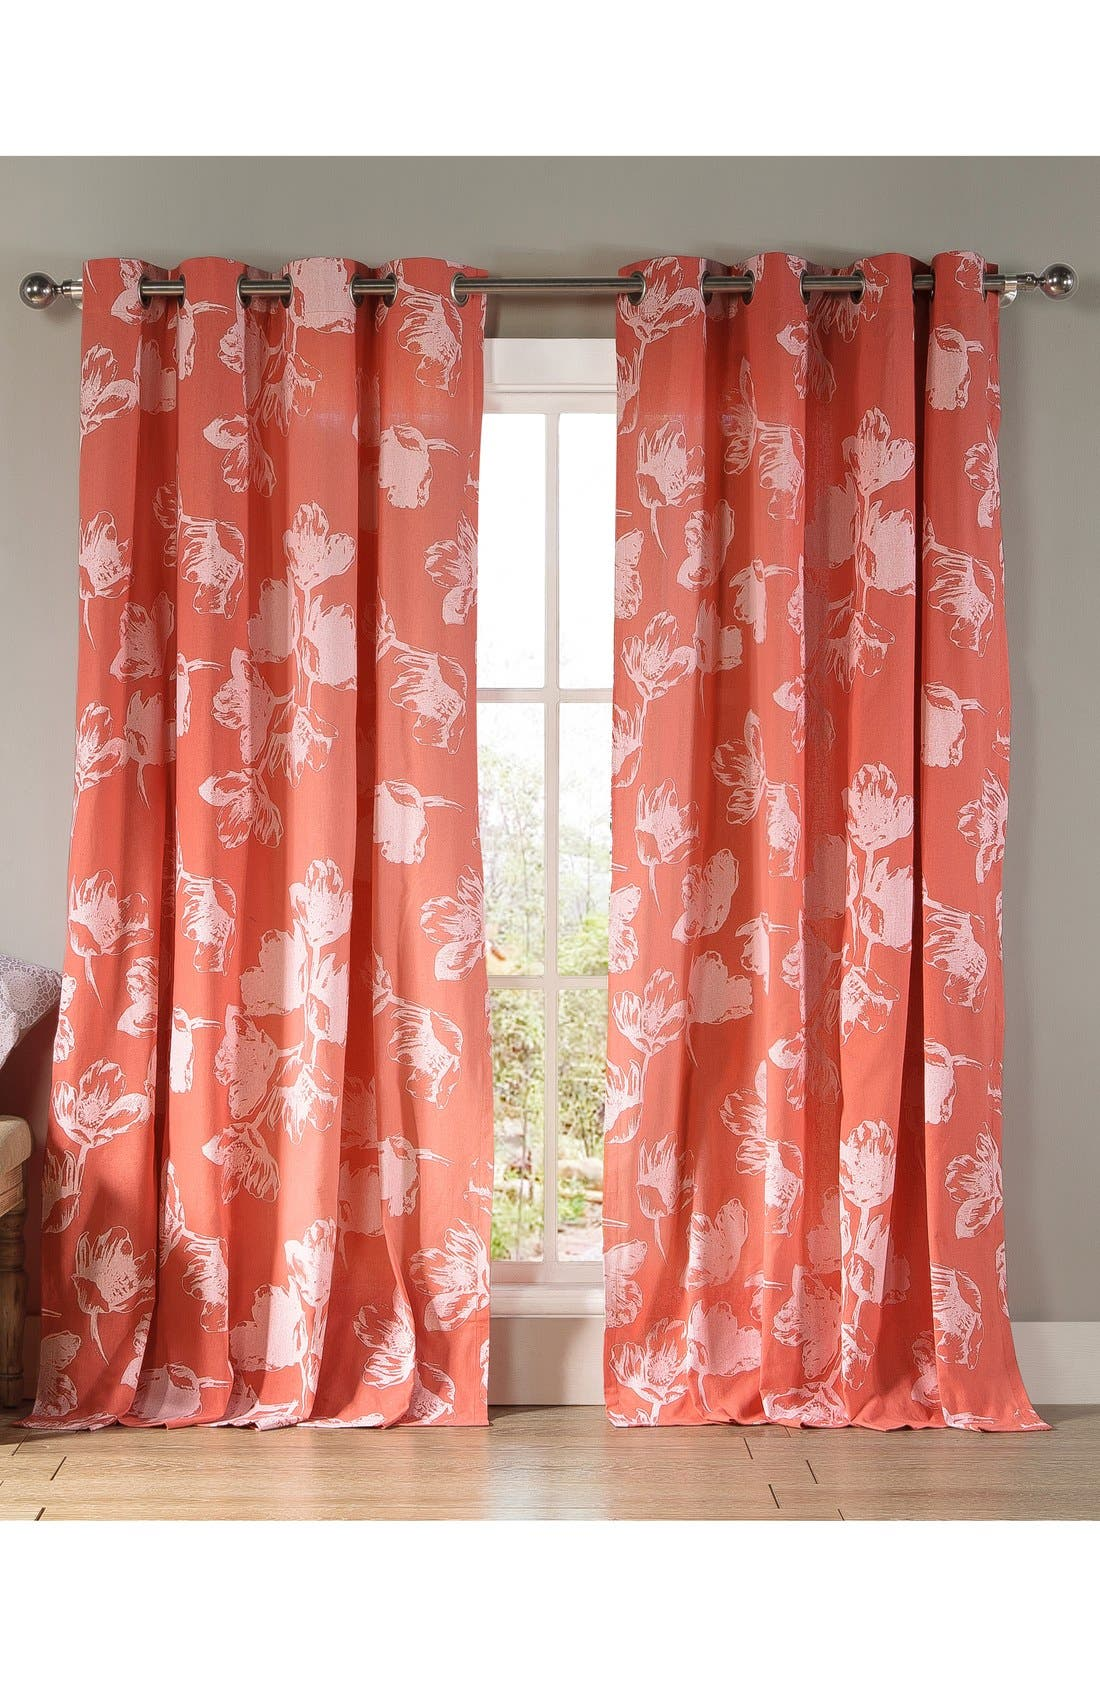 Curtains Home Decor | Nordstrom